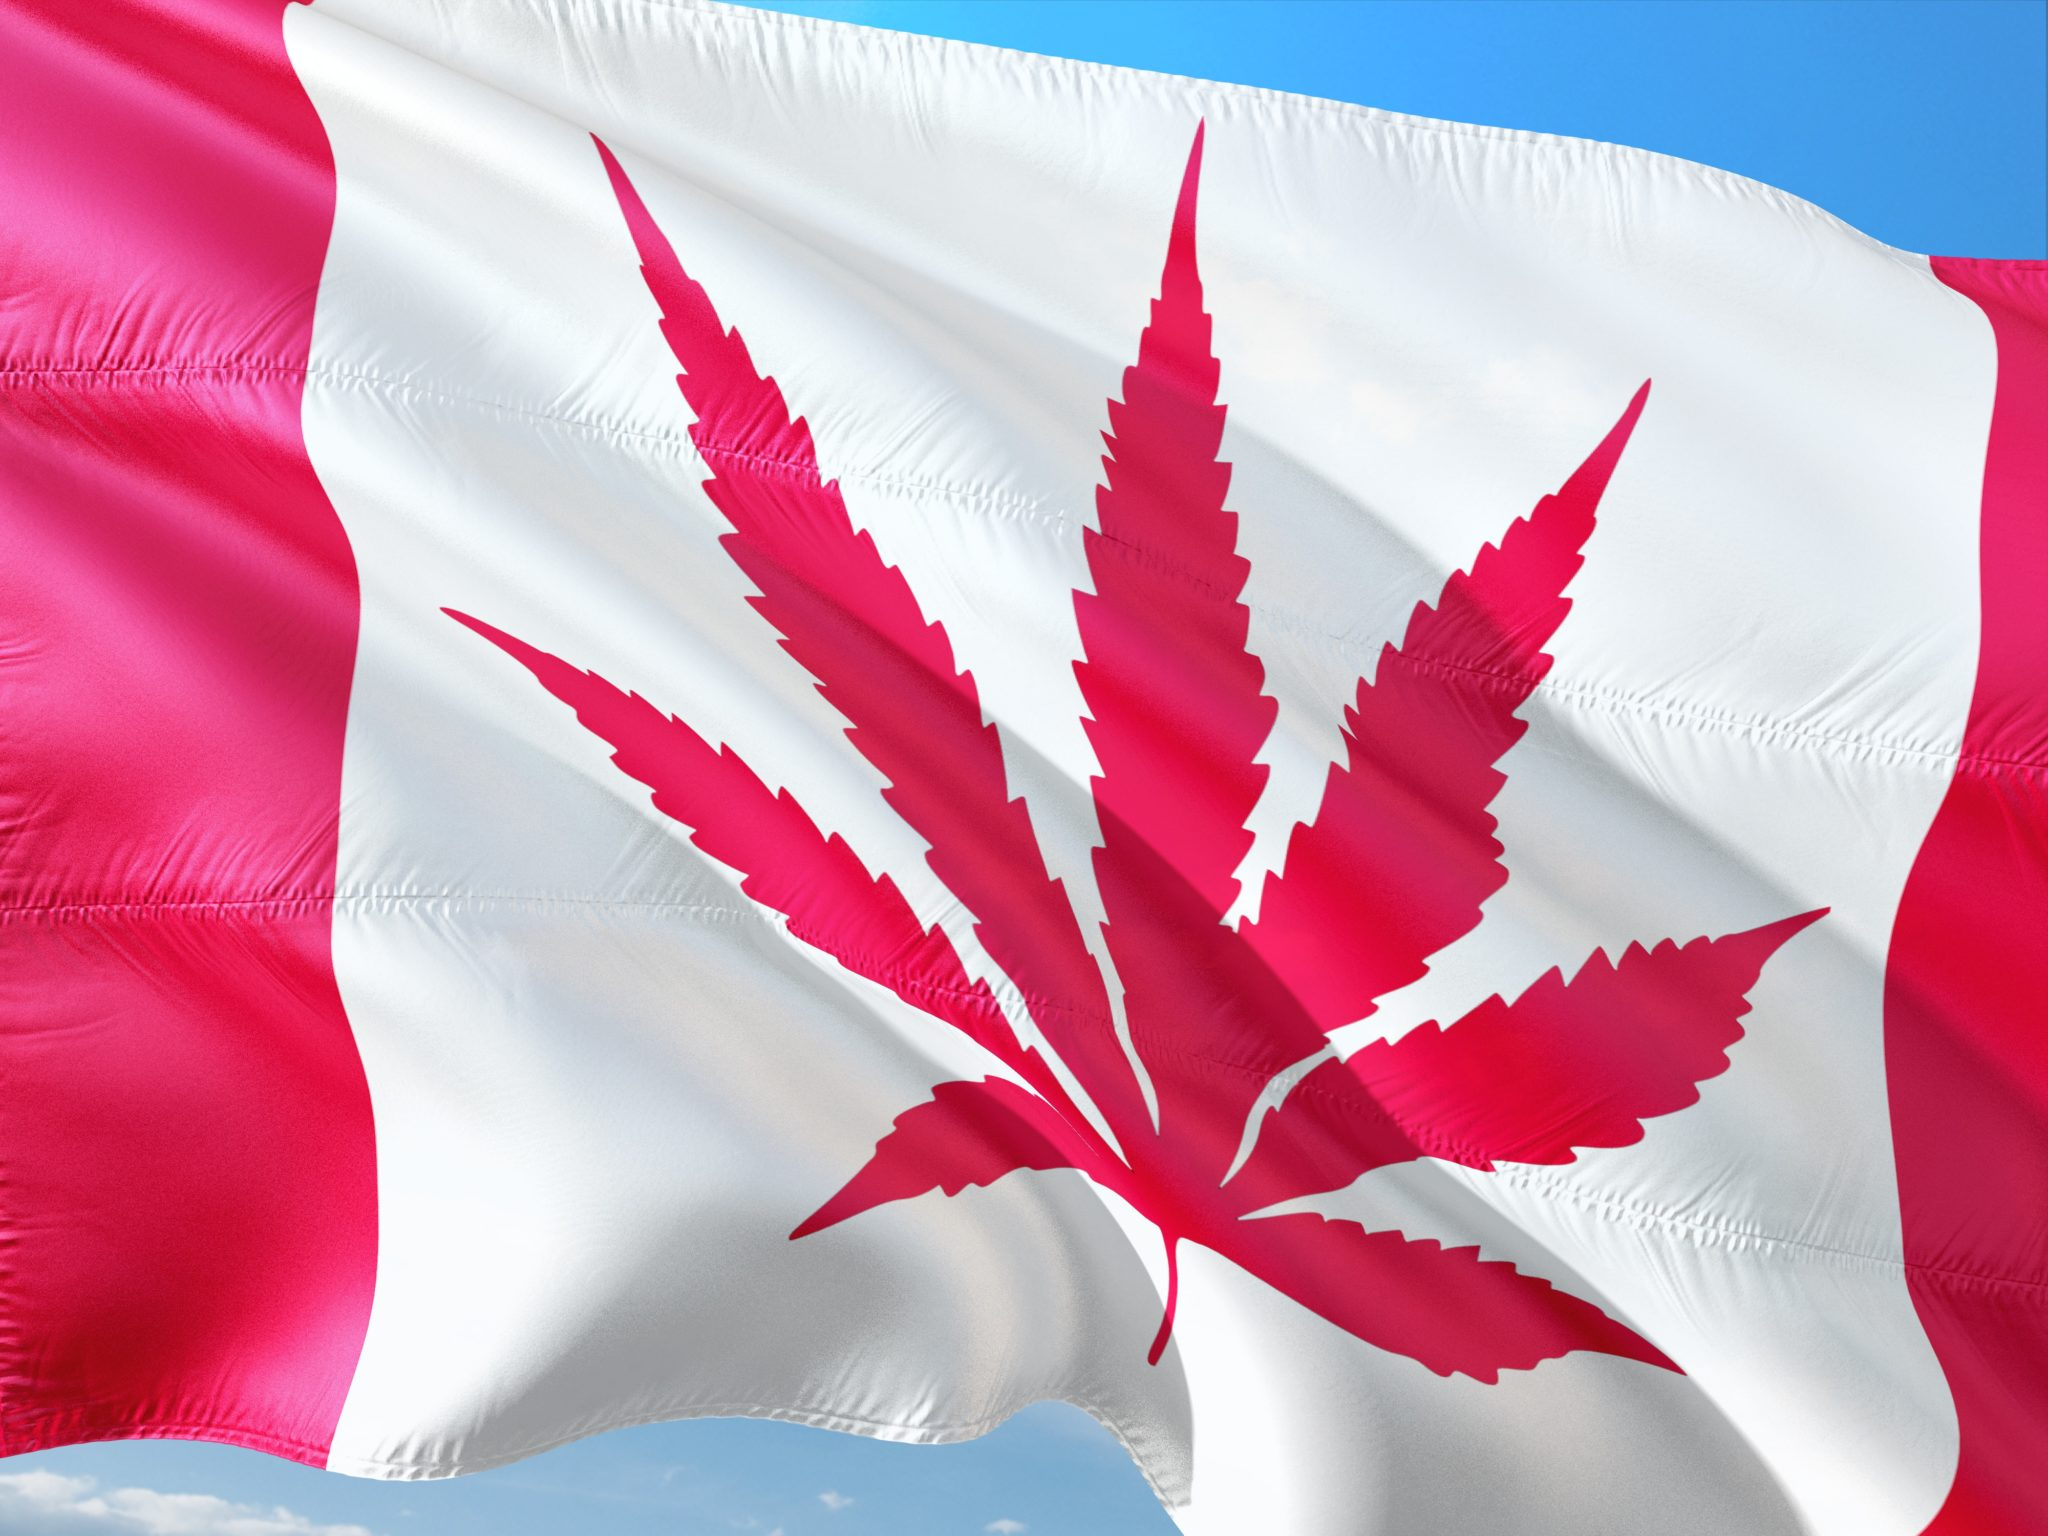 Ministry of Hemp: CBD In Canada: Why Can't I Easily Get Legal CBD In Canada?